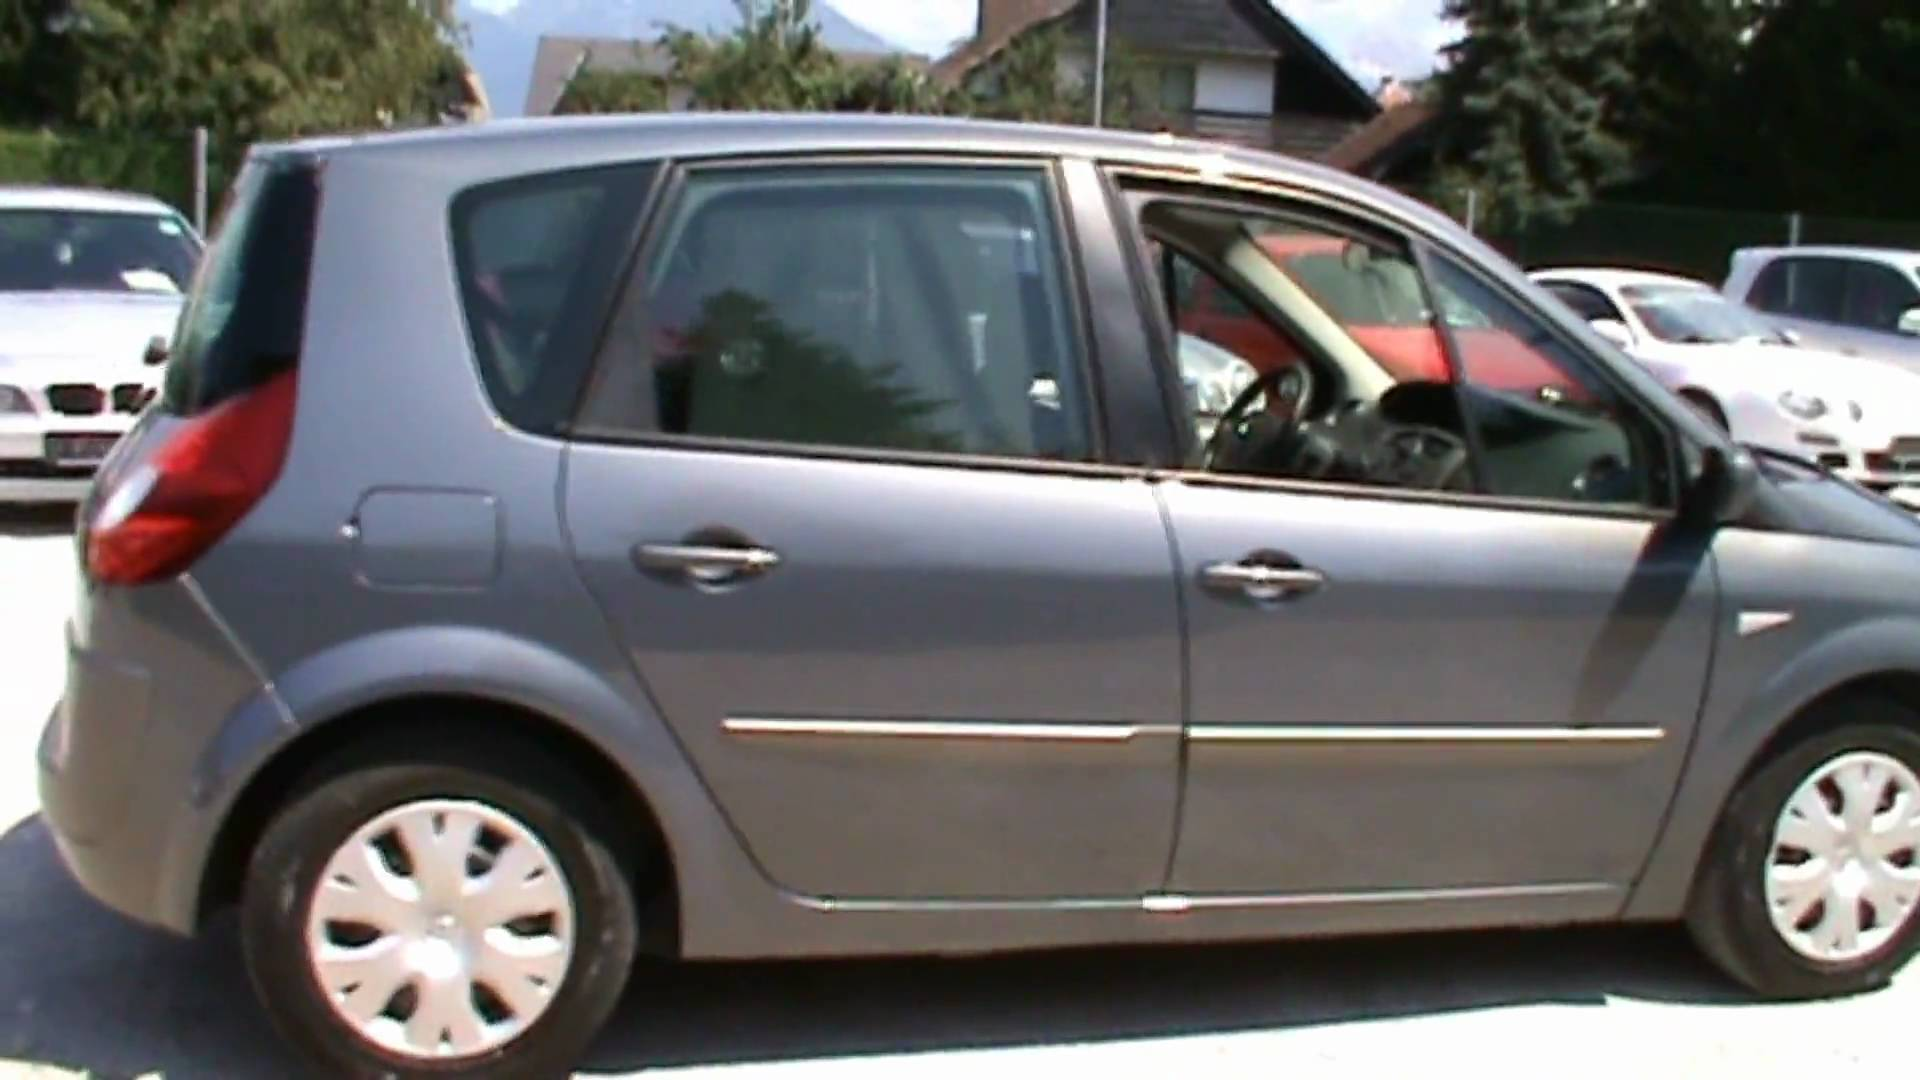 2007 renault scenic ii pictures information and specs. Black Bedroom Furniture Sets. Home Design Ideas